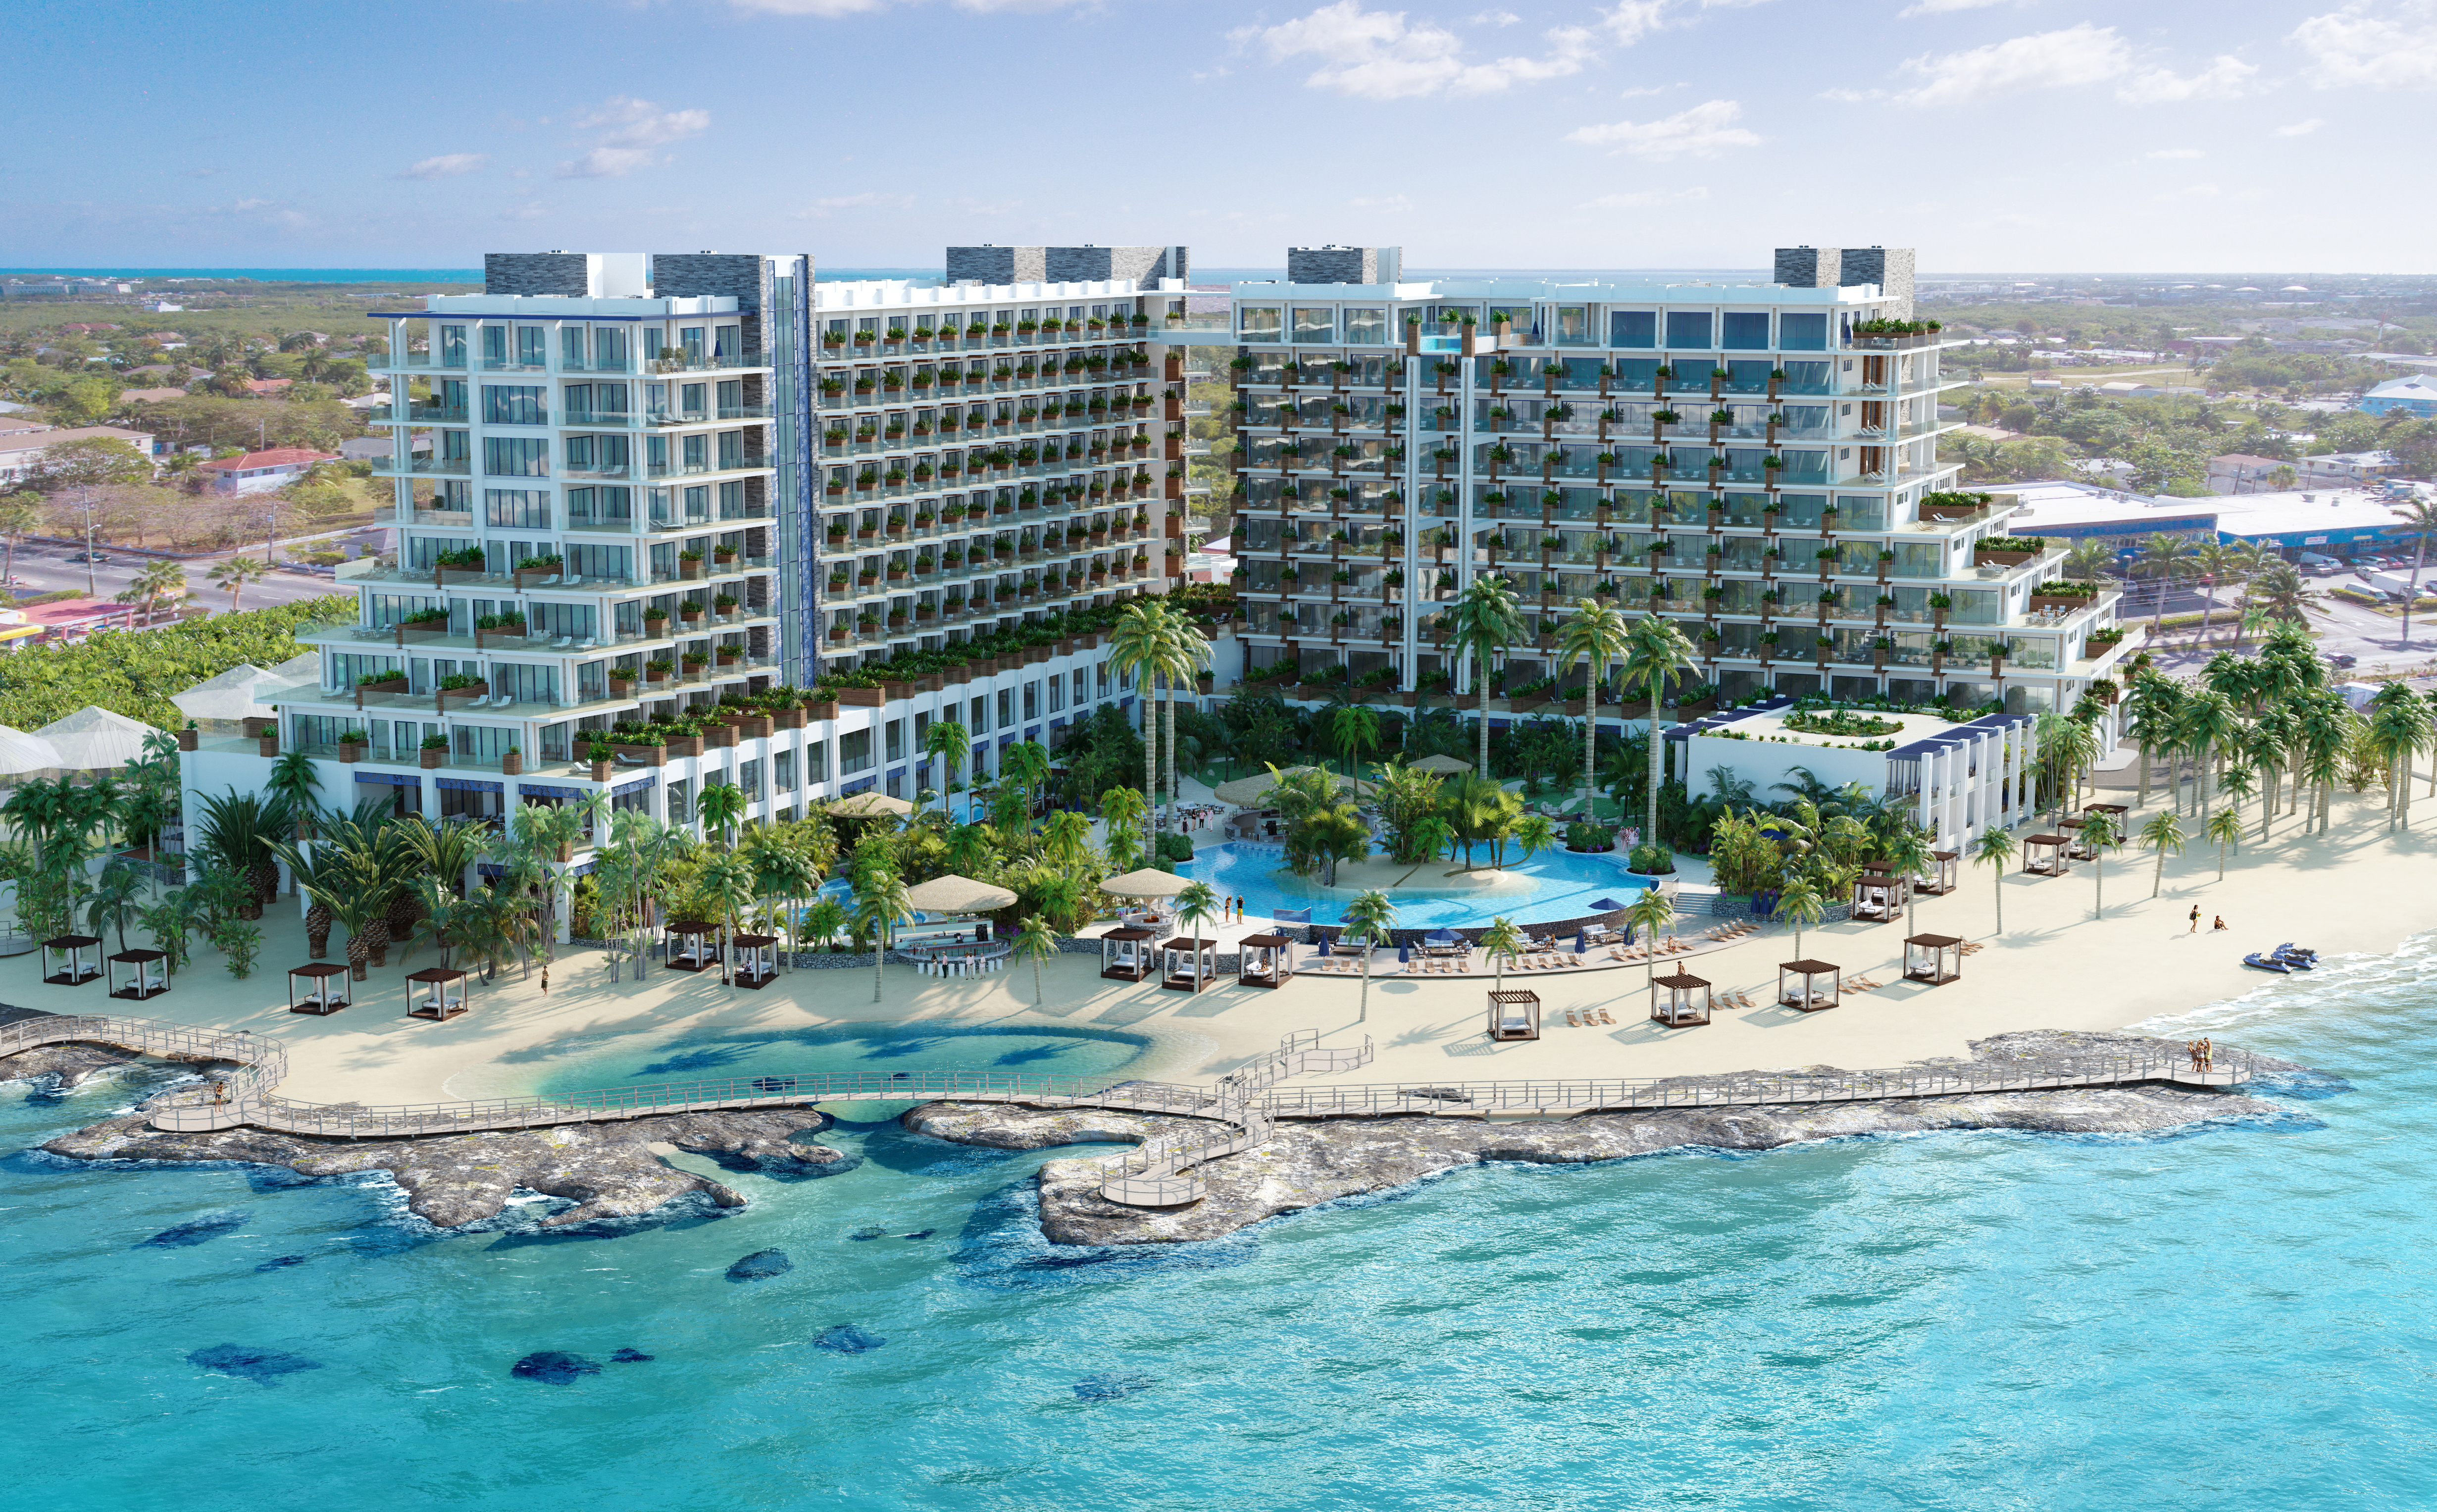 Hyatt Announces Plans For A Grand Hotel And Residences In Cayman Business Wire